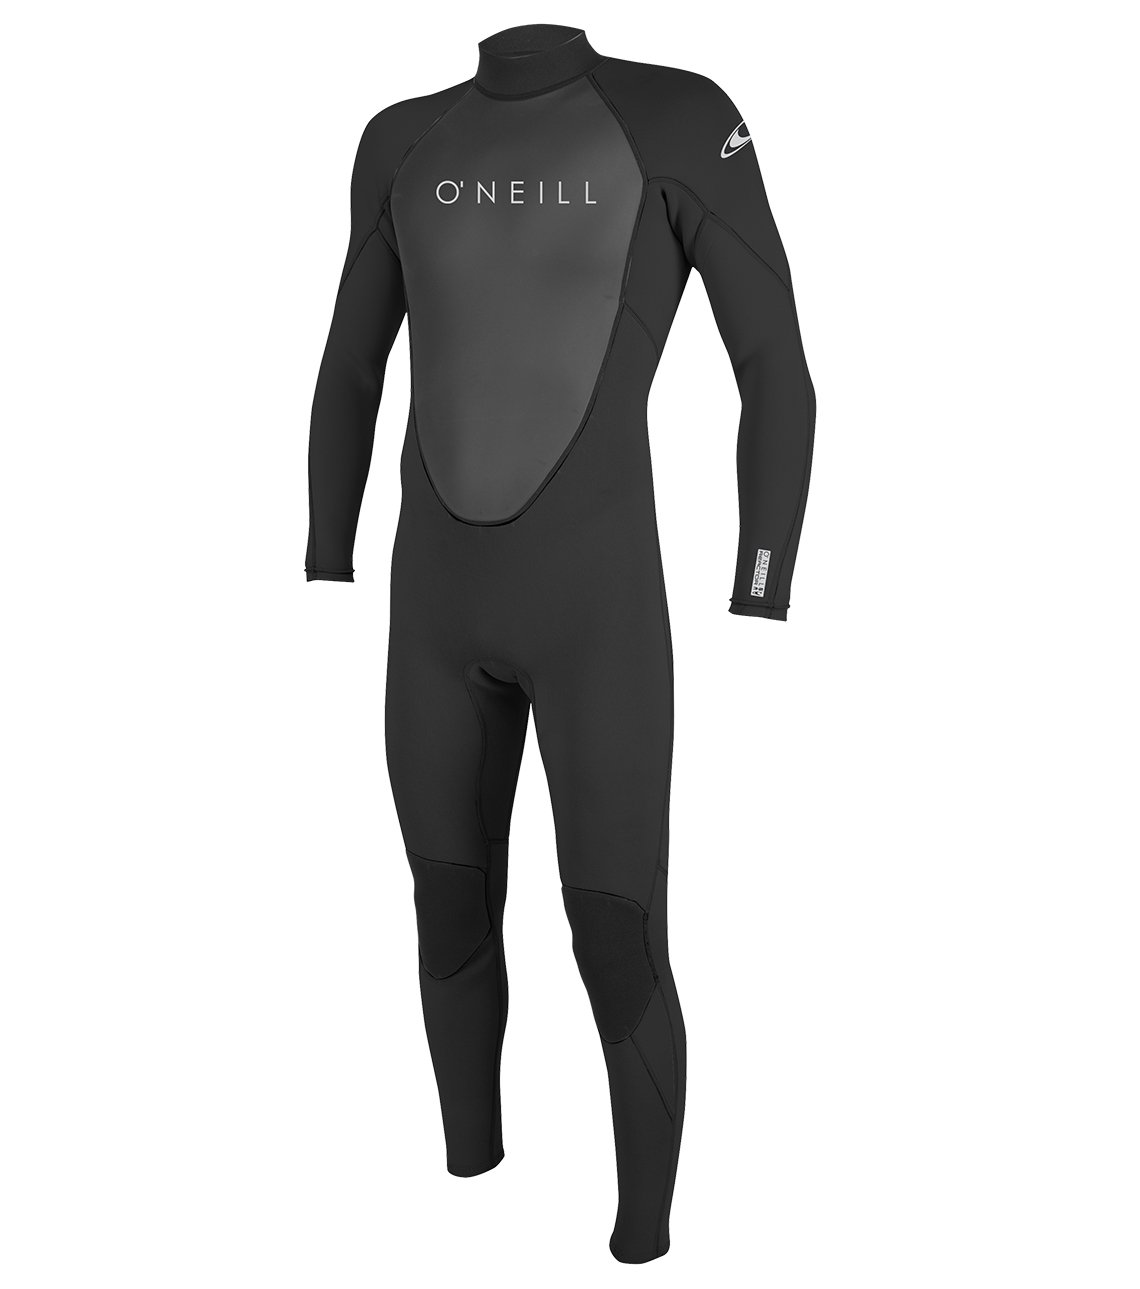 O'Neill Men's Reactor II 3/2mm Back Zip Full Wetsuit, Black, Large Tall by O'Neill Wetsuits